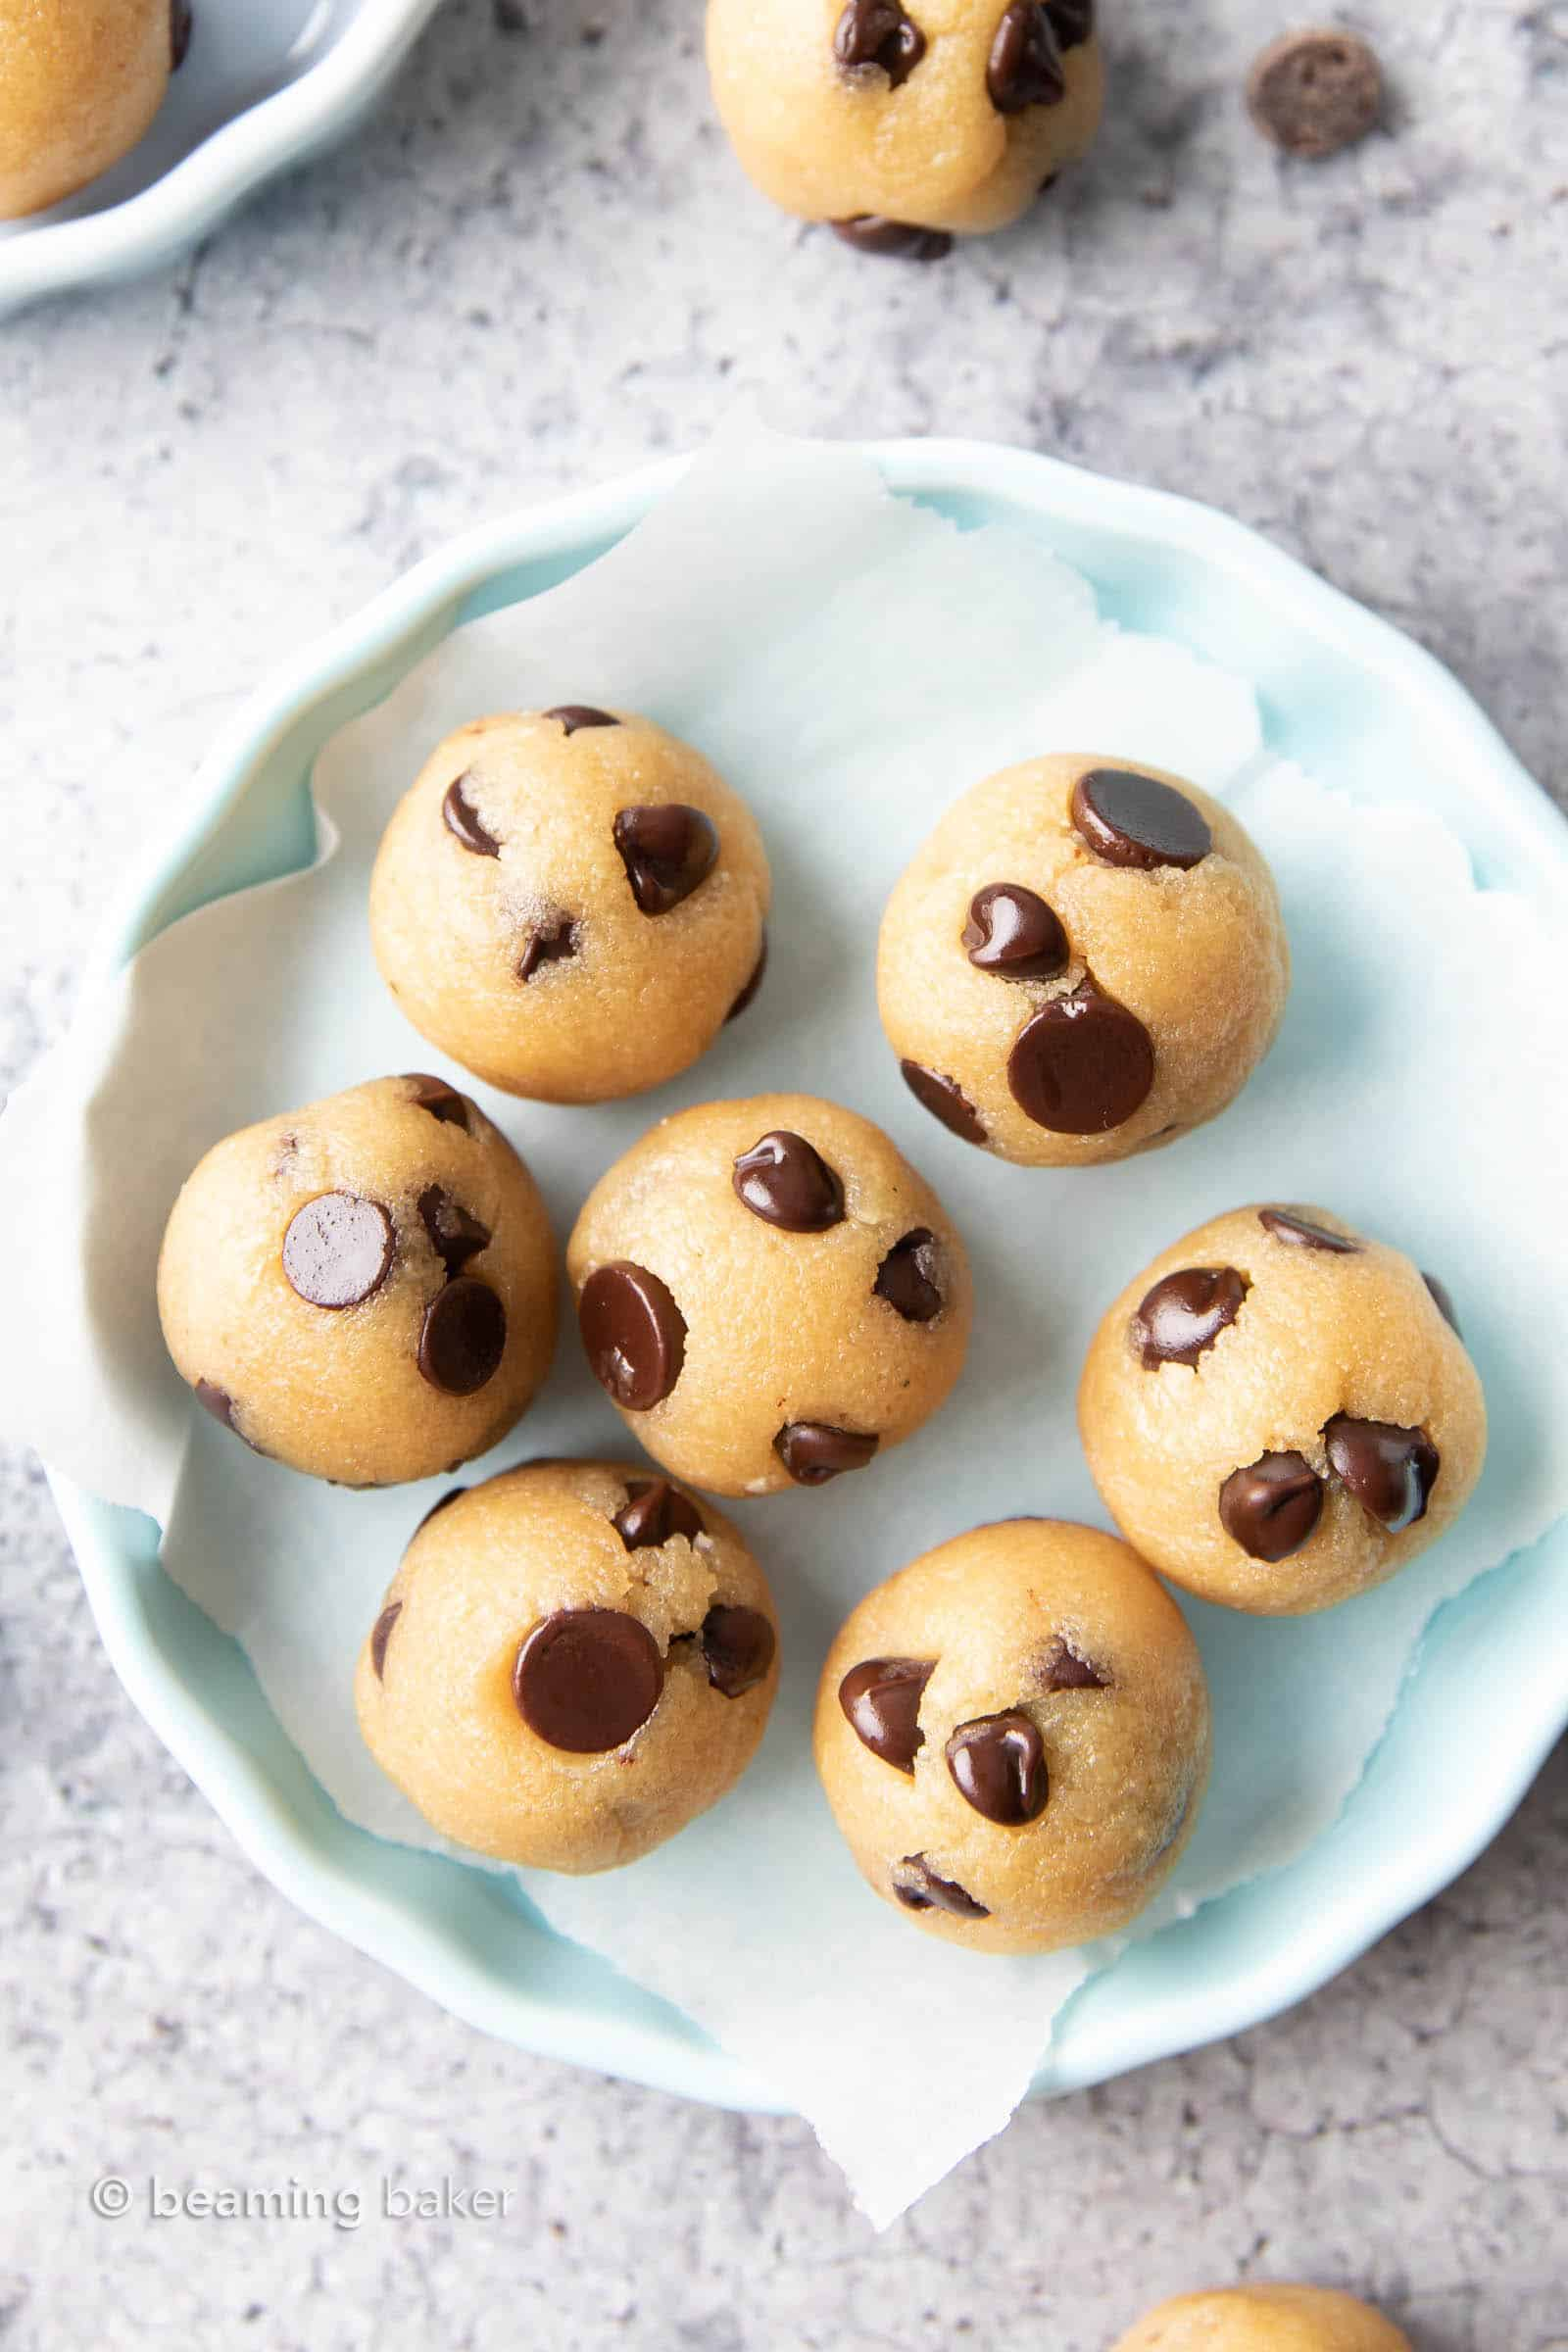 Keto Cookie Dough Bites: an easy 5 ingredient keto cookie dough recipe for rich & buttery keto edible cookie dough! Low Carb, Vegan, Dairy-Free. #CookieDough #Keto #LowCarb #KetoFriendly | Recipe at BeamingBaker.com